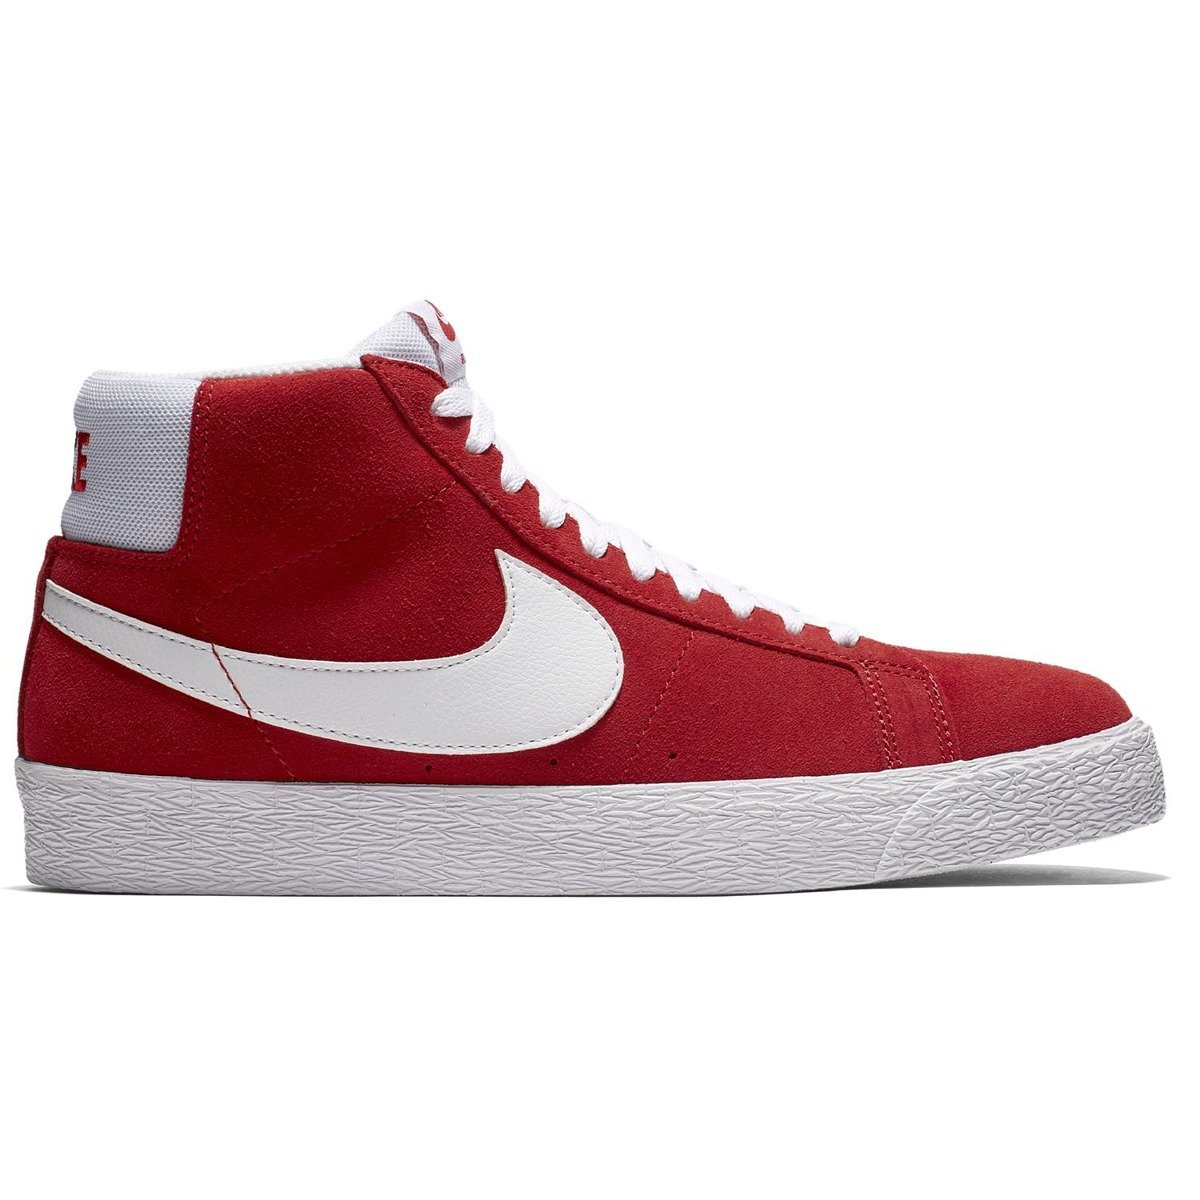 factory price ea0b2 e5e48 ... black 08ad1 5ae51  low cost shoes nike sb zoom blazer mid university  red white click to zoom 2dab1 75257